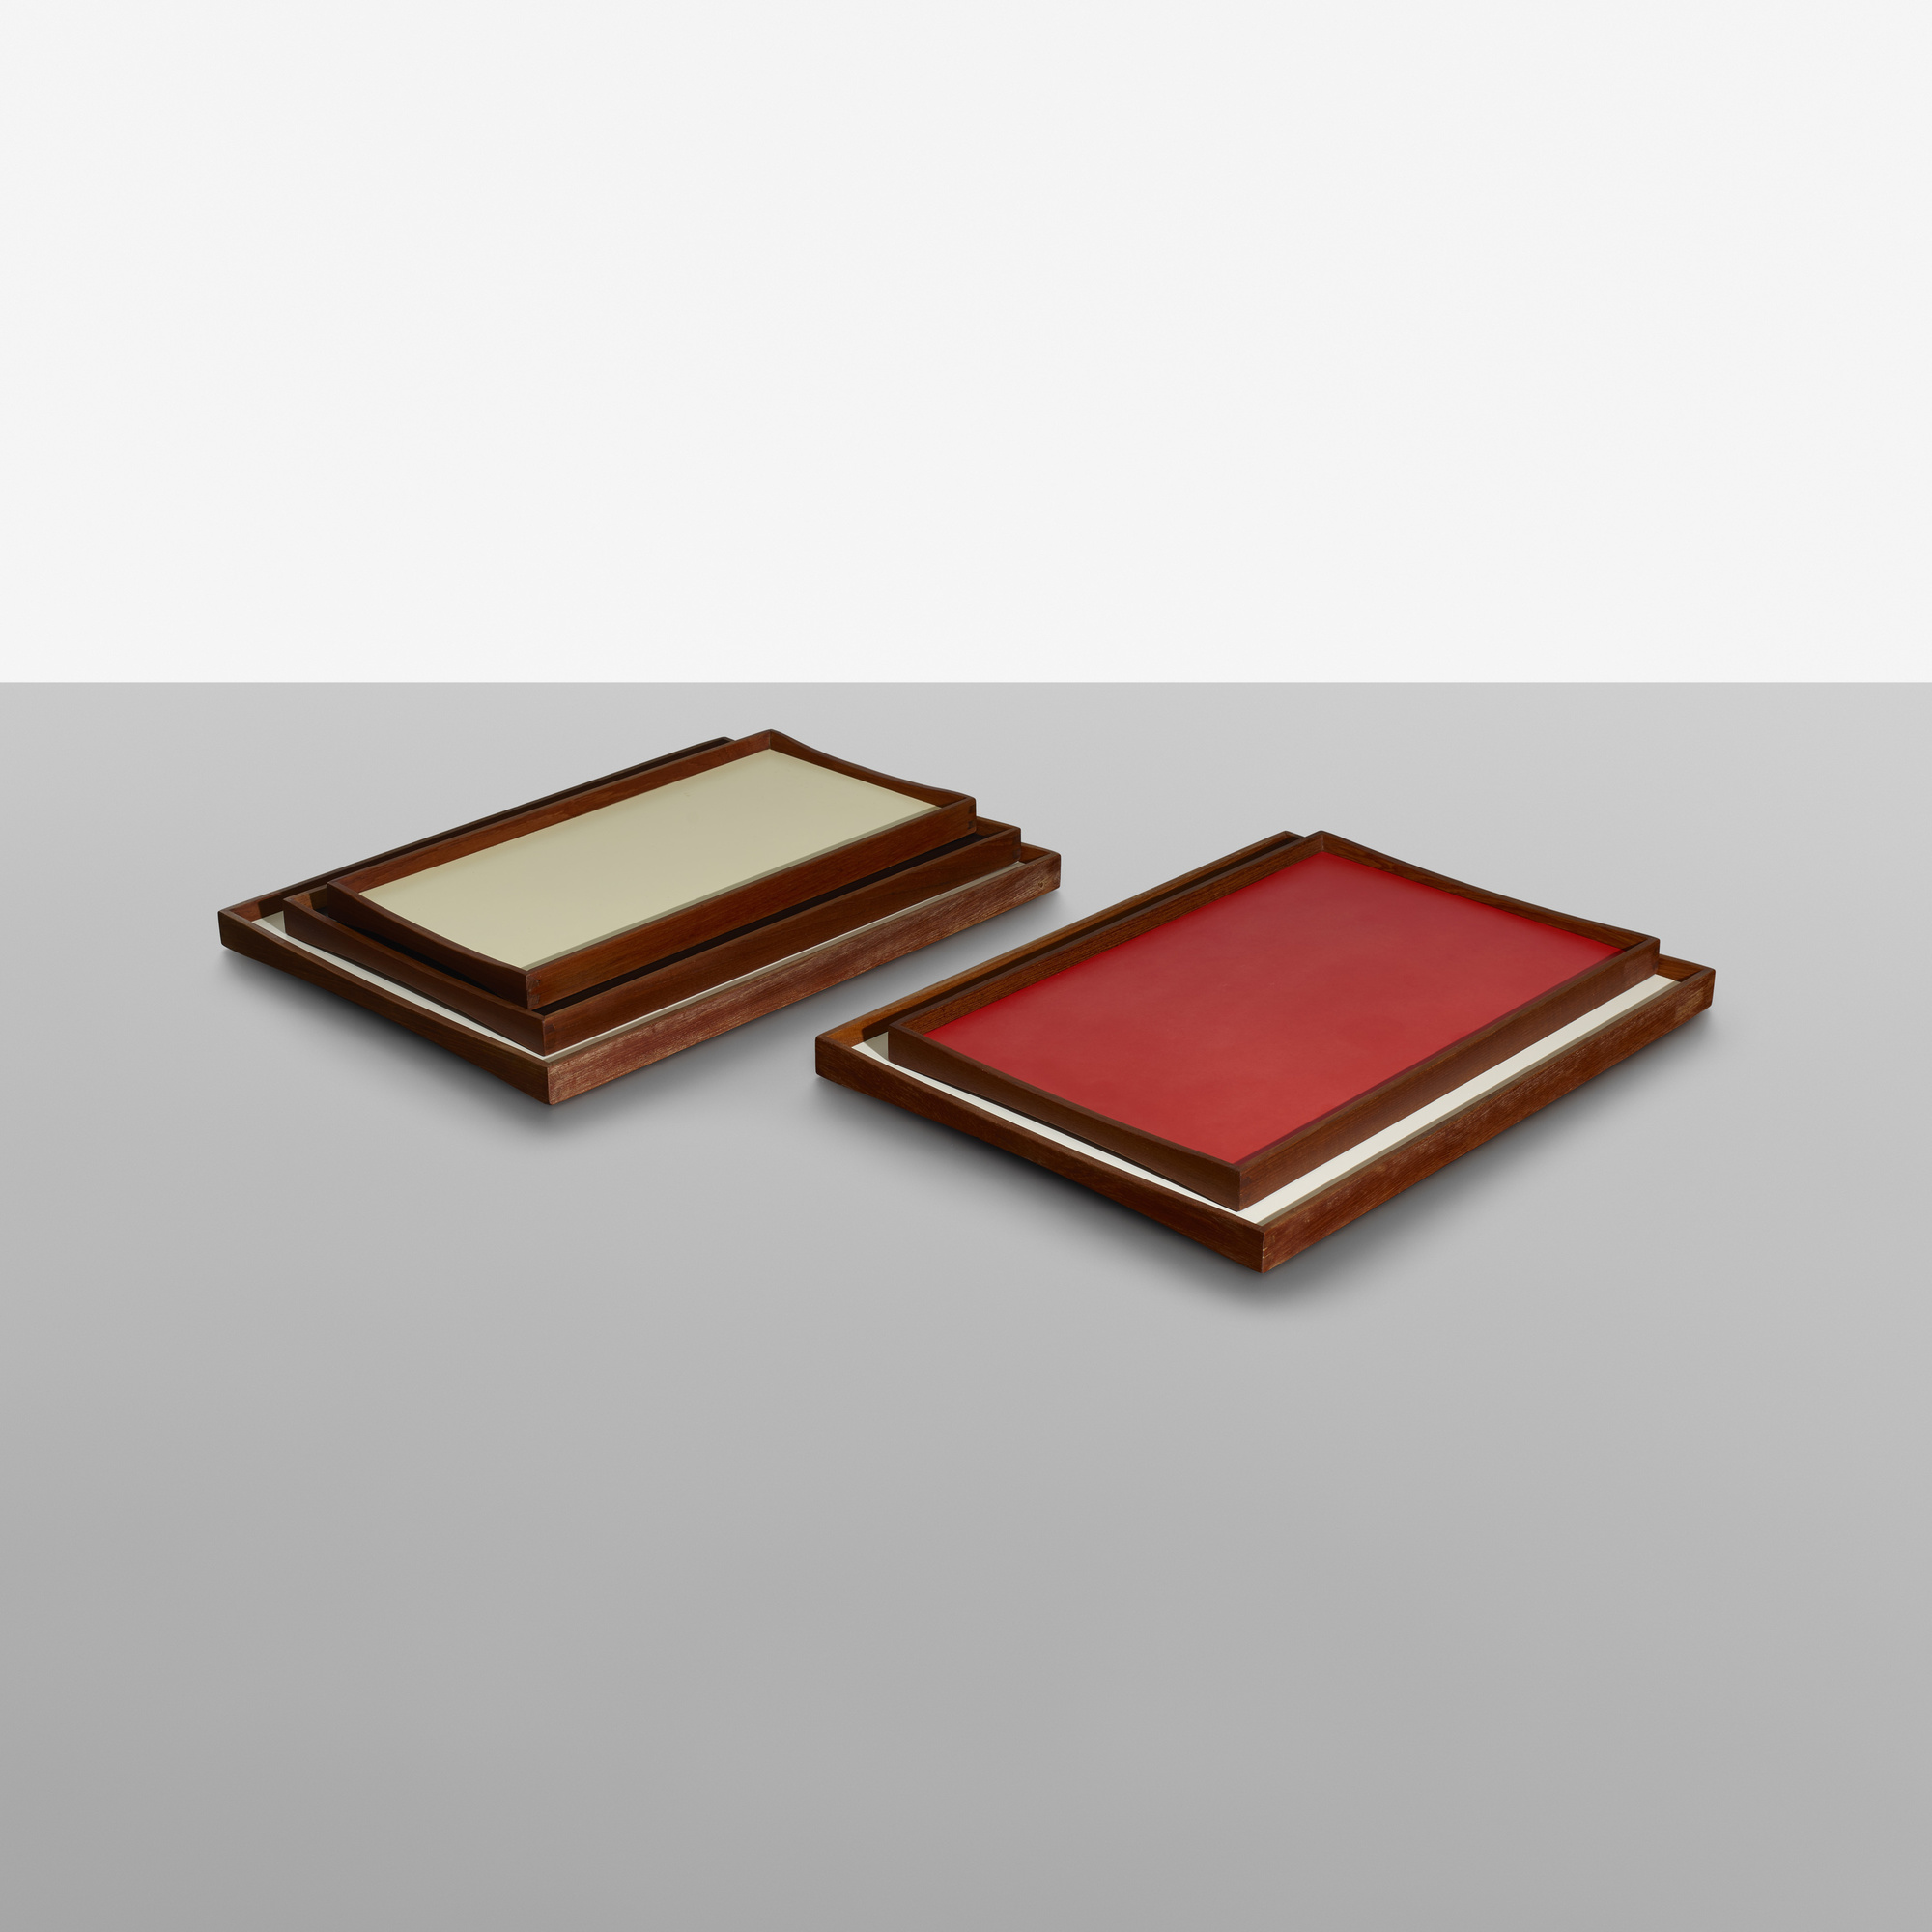 179: Finn Juhl / reversible trays, set of five (1 of 2)